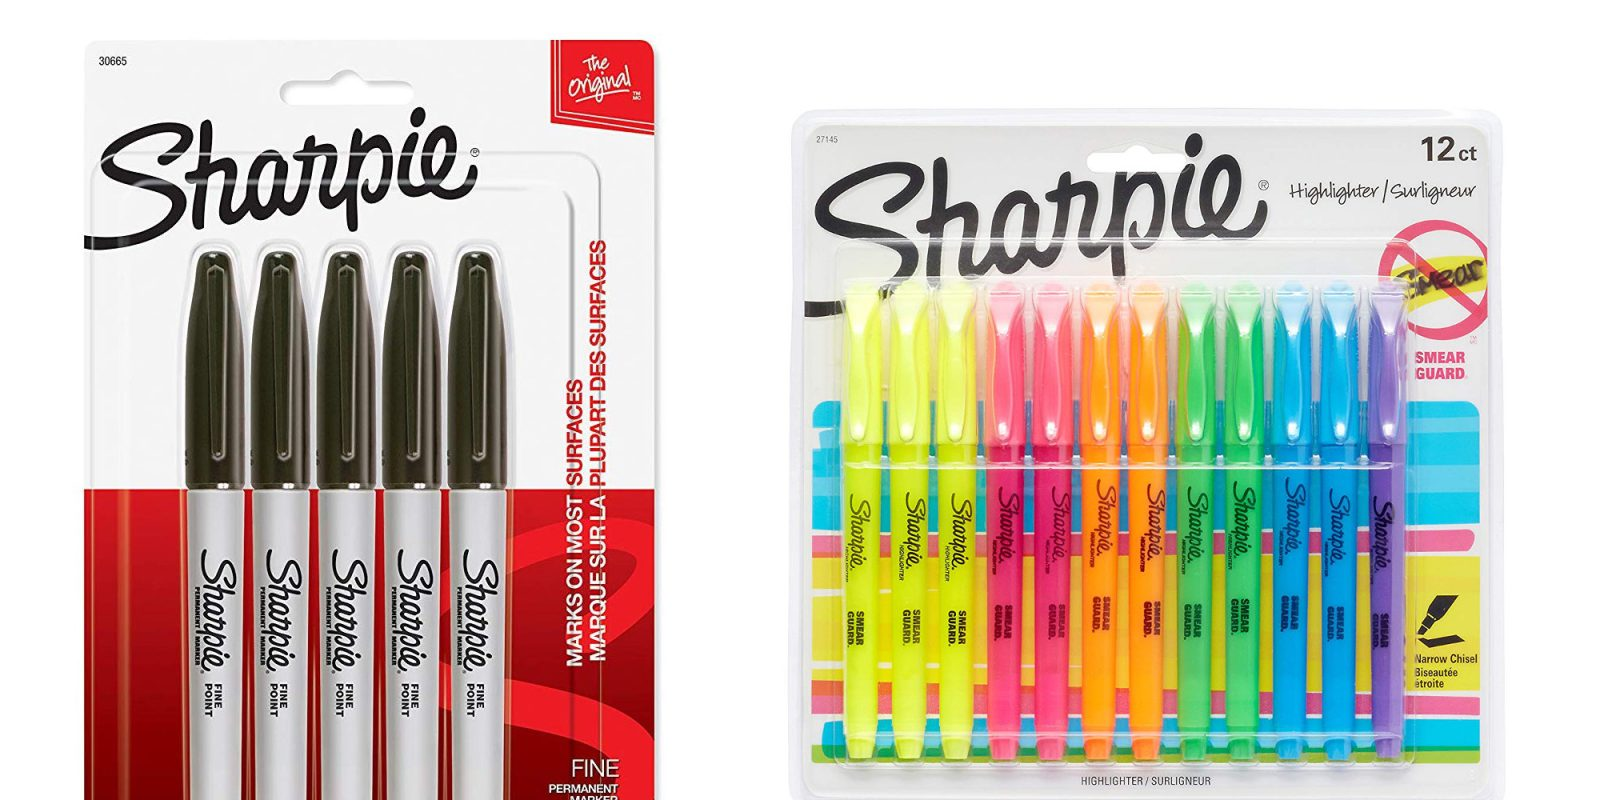 Office/School supplies from $1: Sharpies, Crayola pens, scissors, more